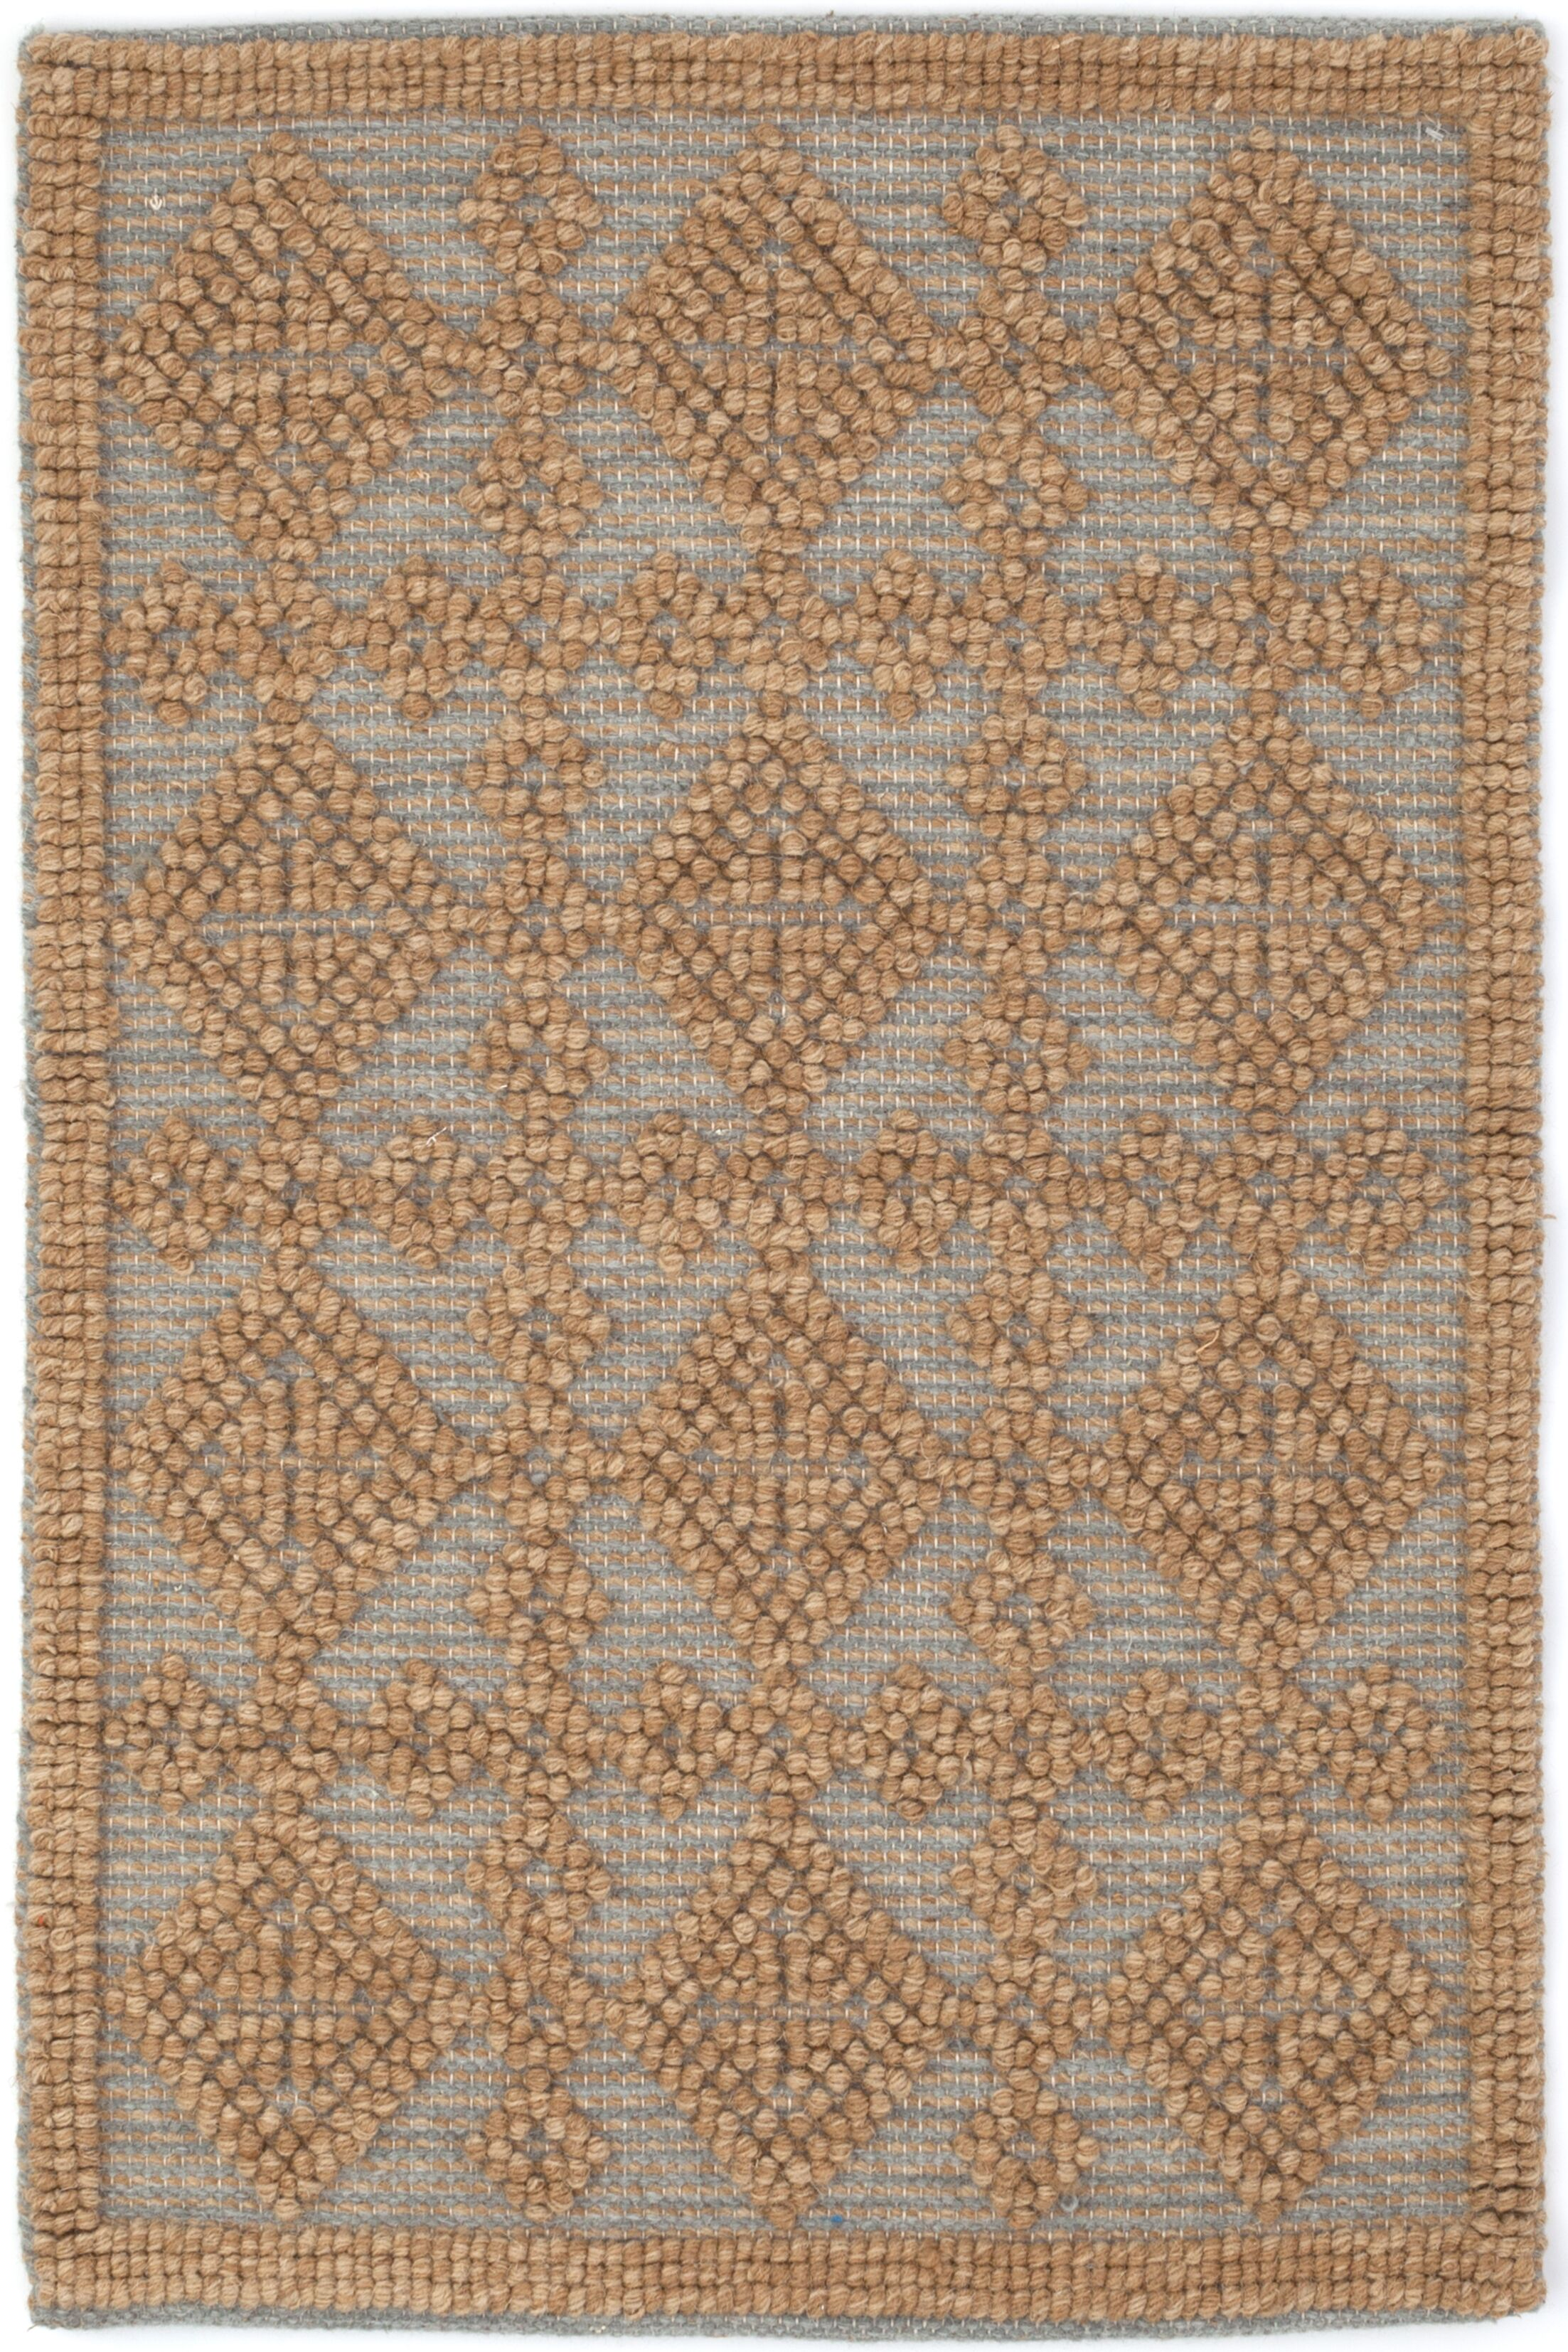 Hand Woven Brown Area Rug Rug Size: Runner 2'6